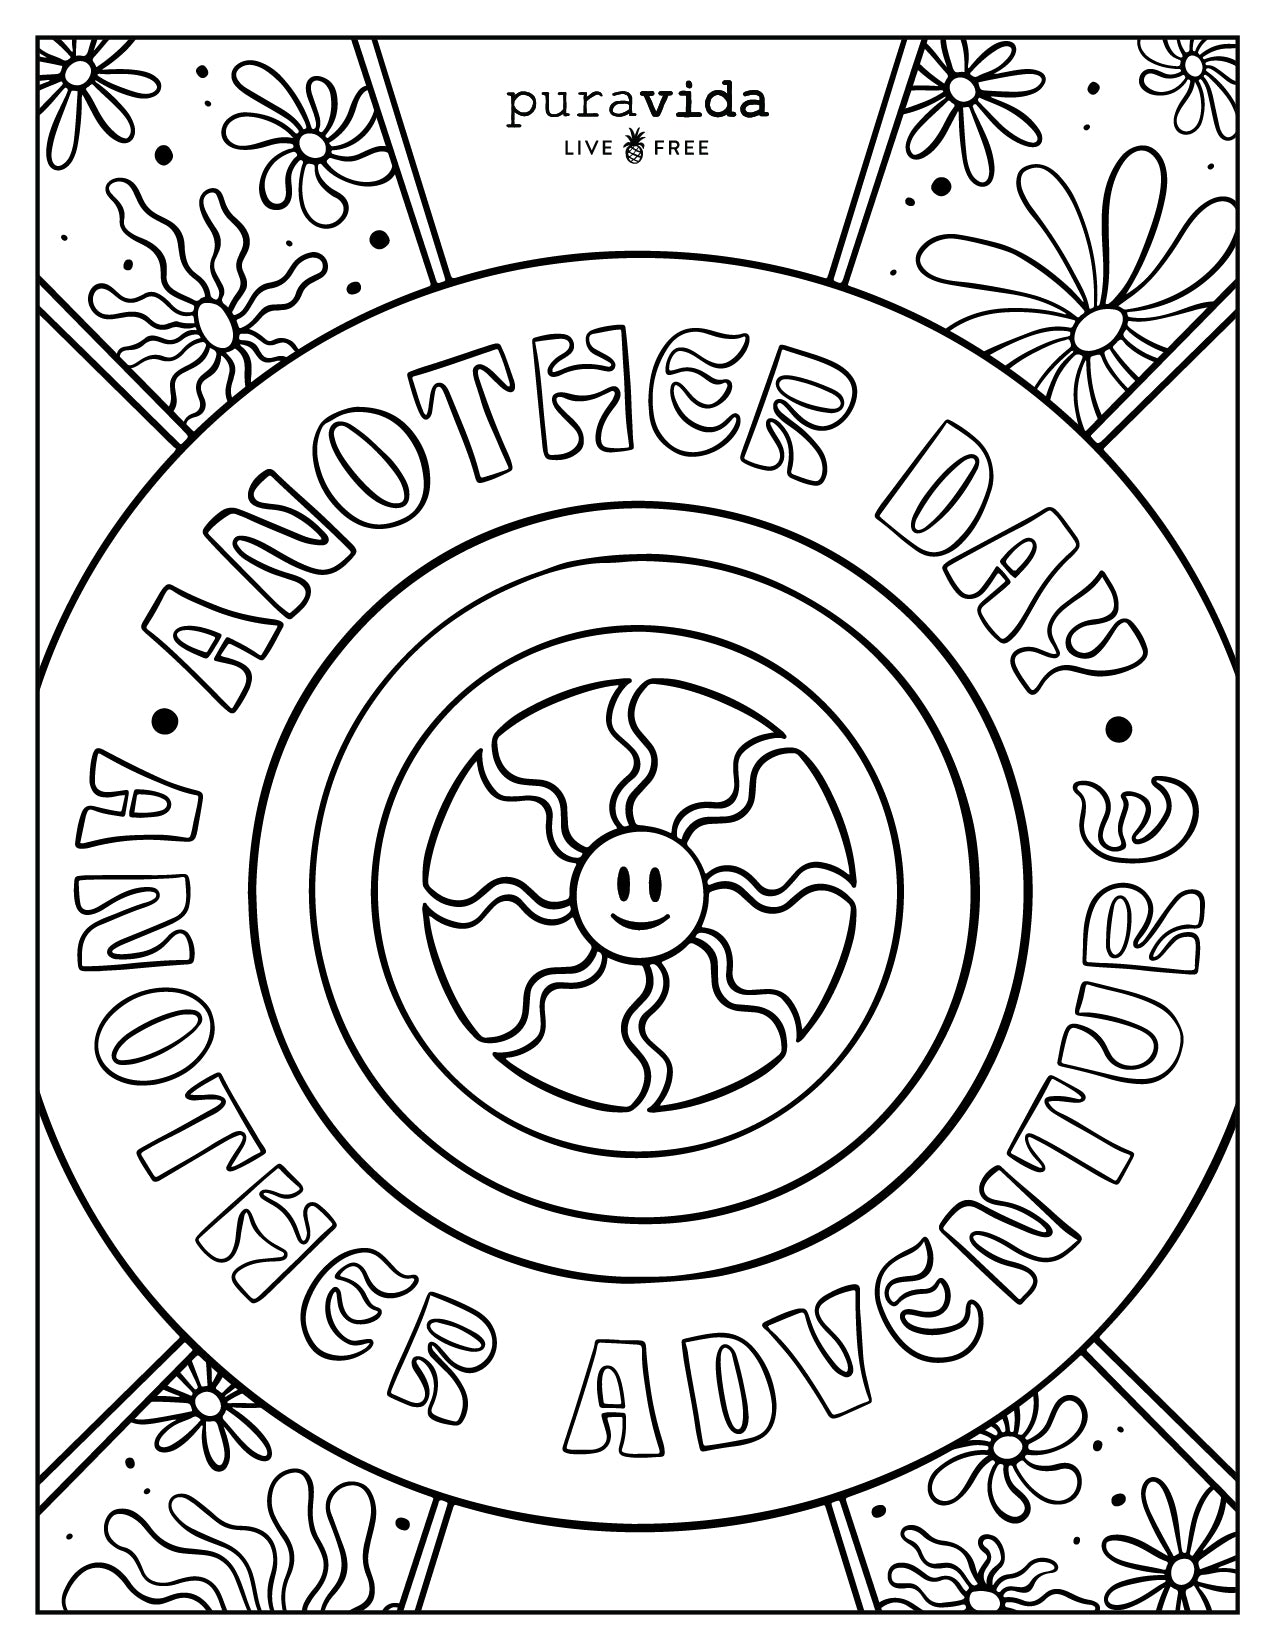 PV Birthday Coloring Sheets - Another Day Another Adventure